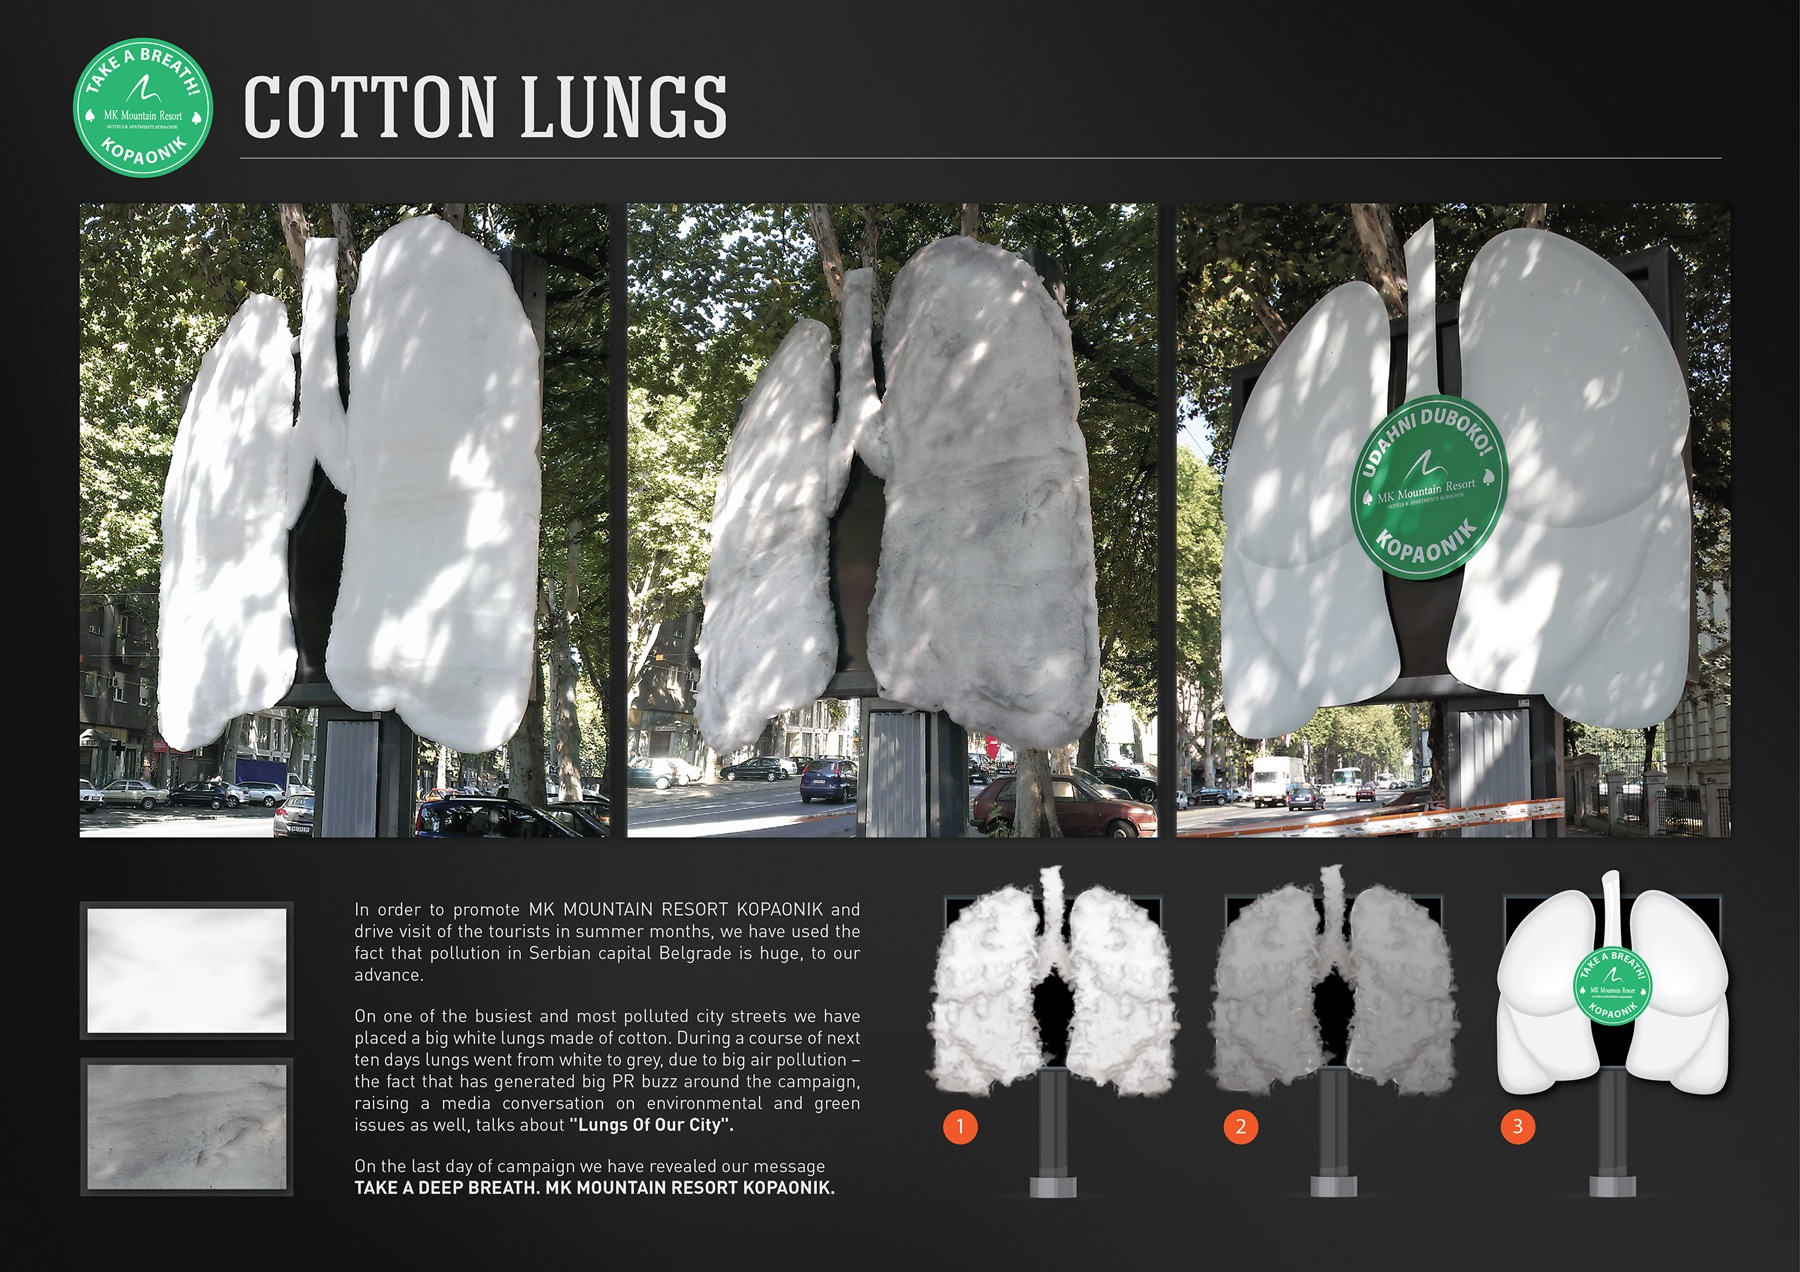 MK Mountain Resort Cotton lungs